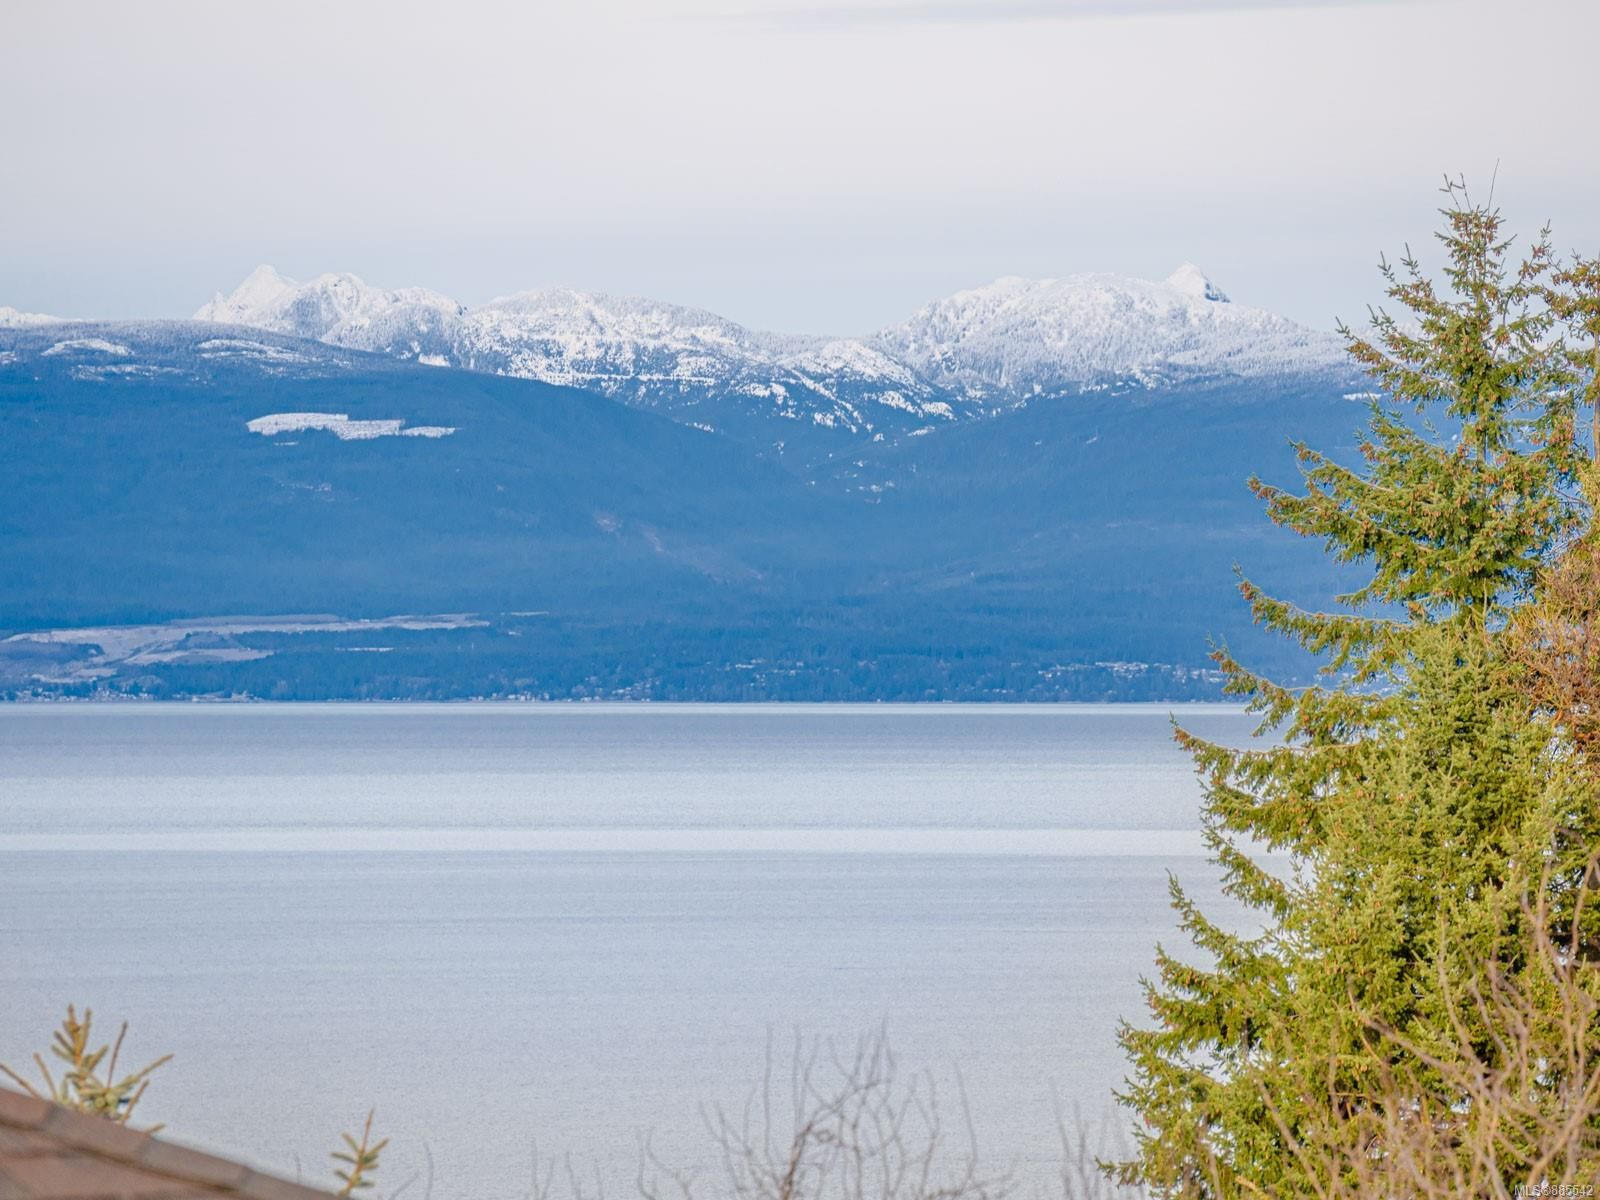 Photo 57: Photos: 6278 Invermere Rd in : Na North Nanaimo House for sale (Nanaimo)  : MLS®# 885542